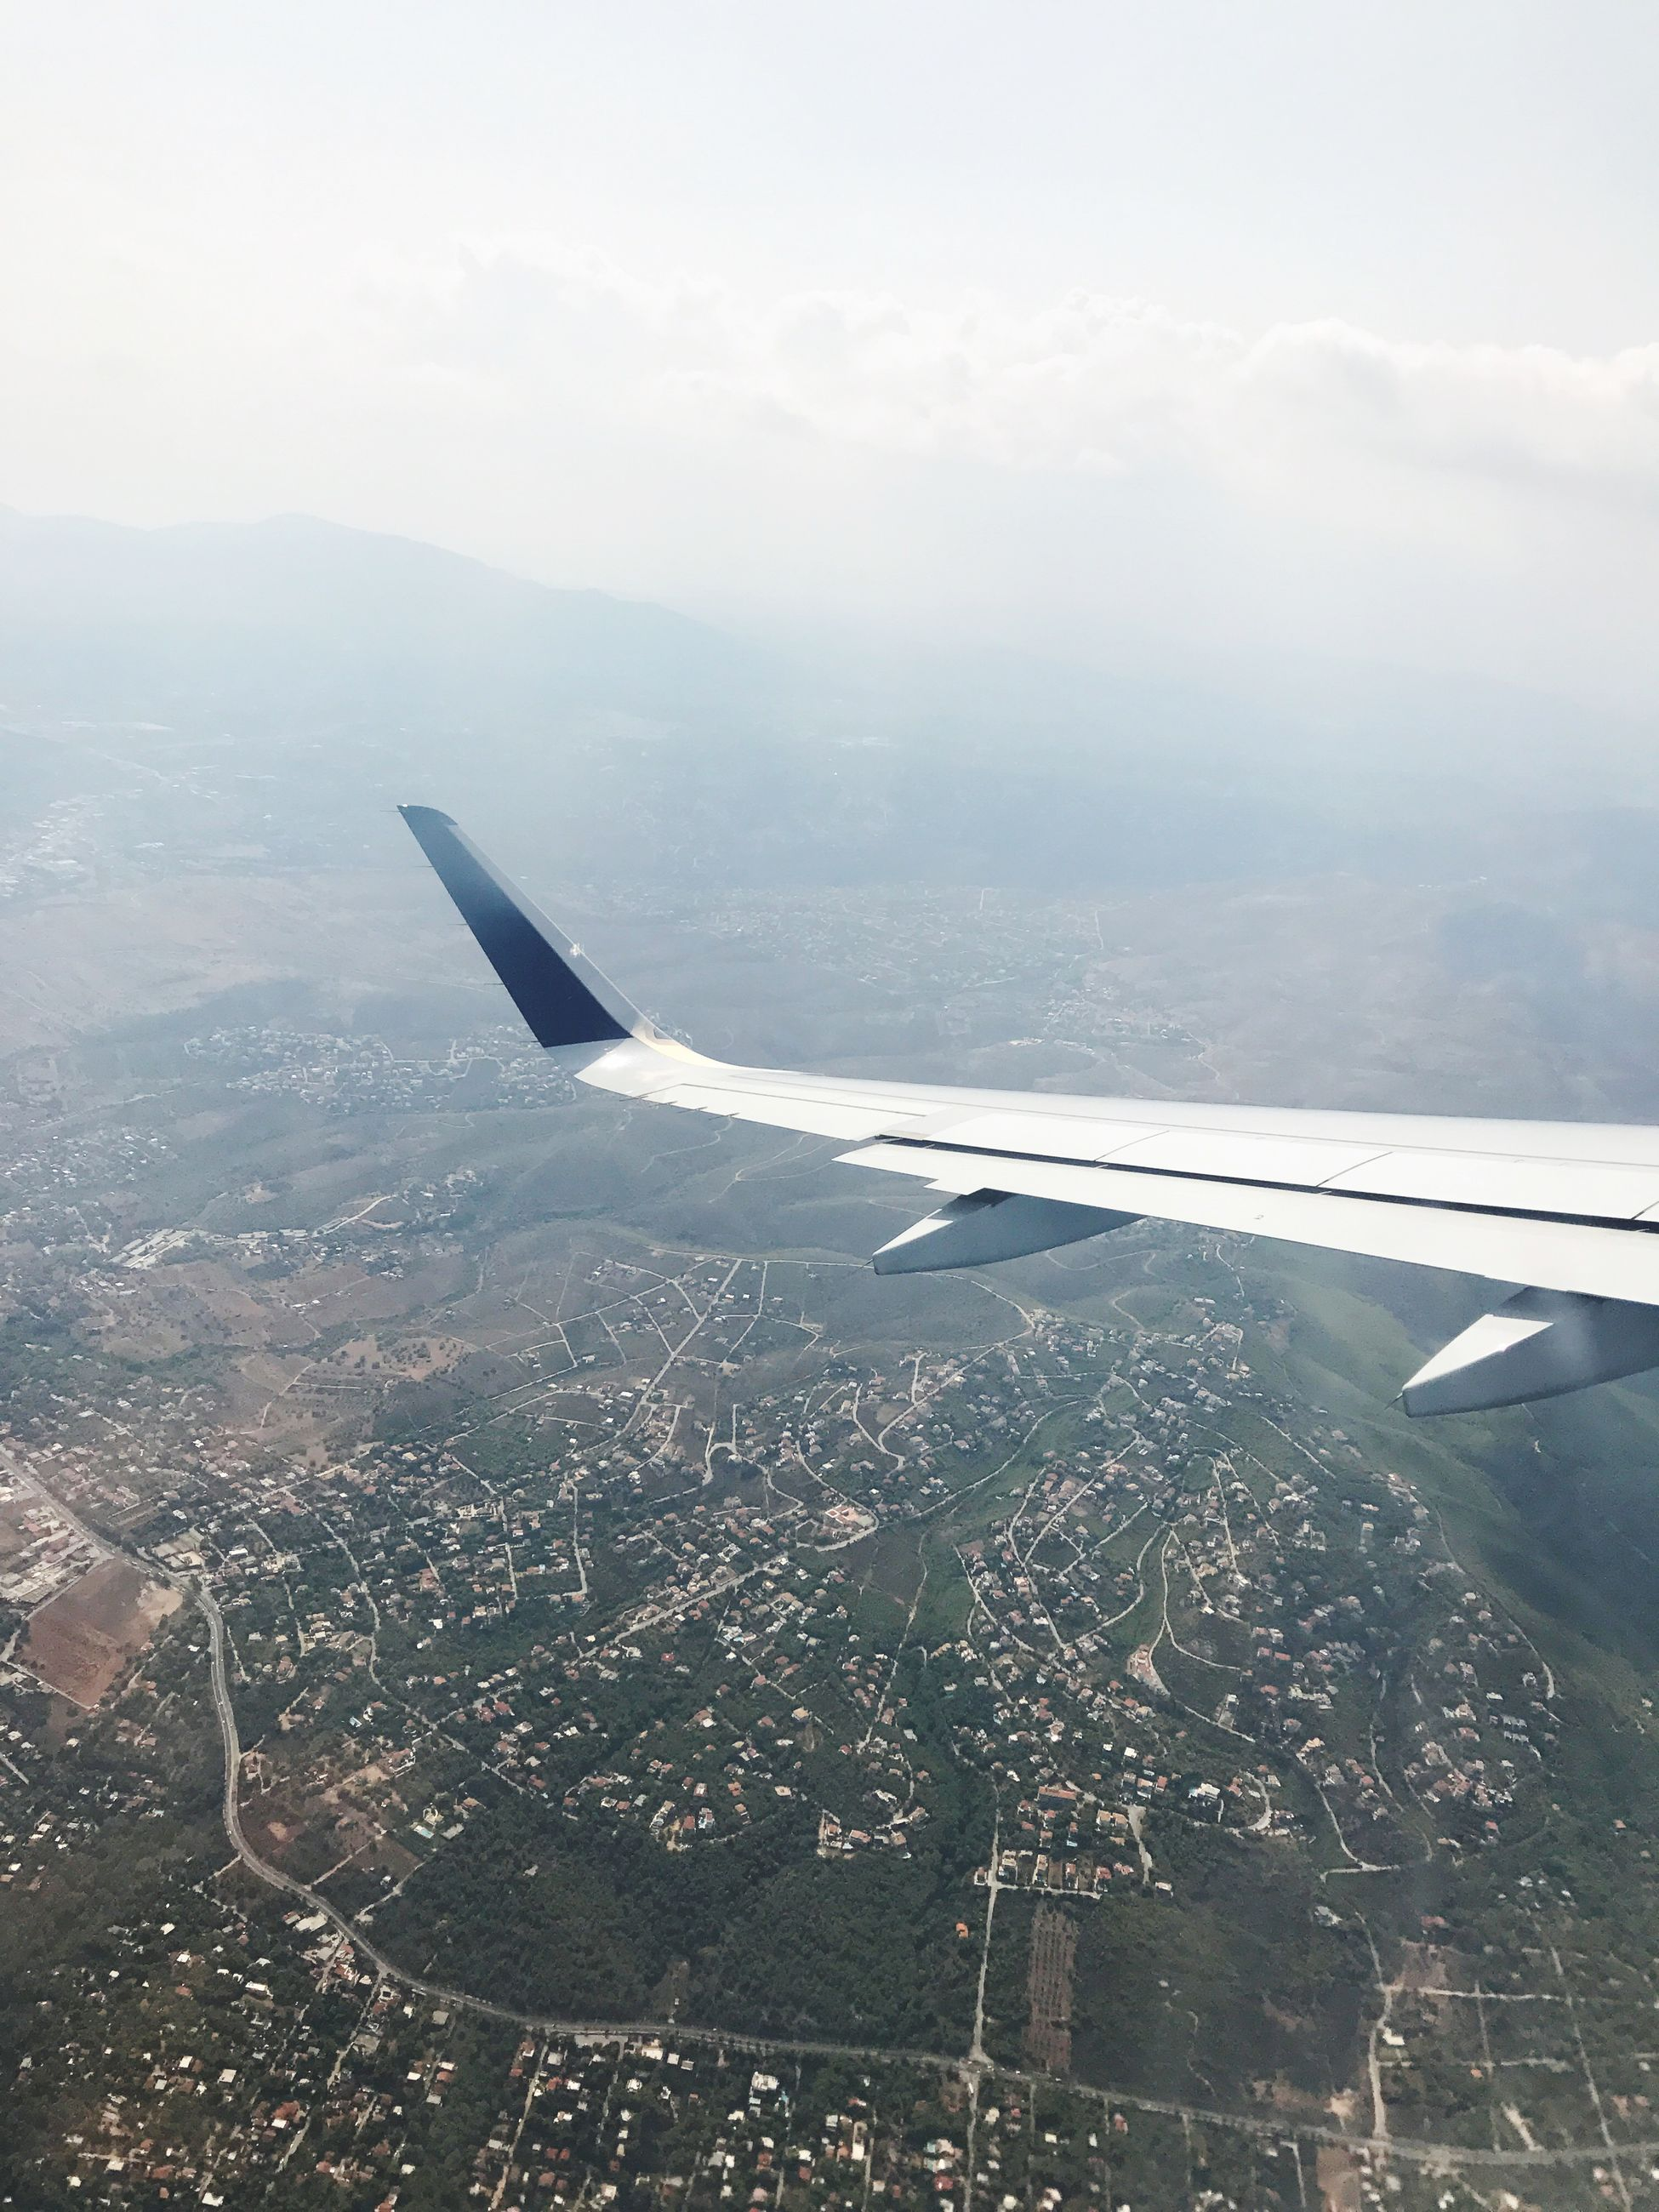 aerial view, airplane, airplane wing, nature, no people, sky, scenics, flying, landscape, aircraft wing, mid-air, transportation, day, air vehicle, cityscape, outdoors, beauty in nature, city, mountain